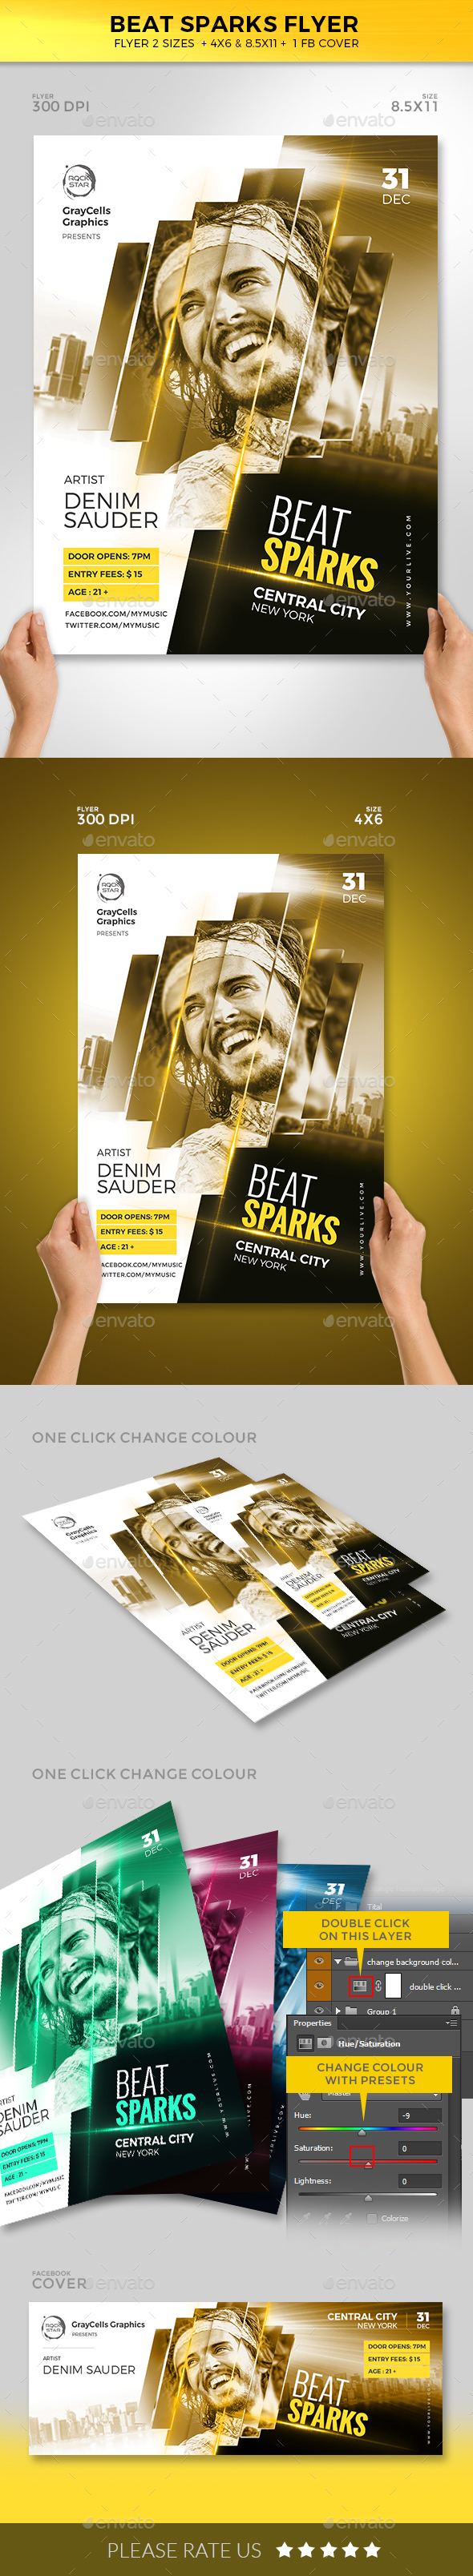 Beat Sparks Flyer - Clubs & Parties Events